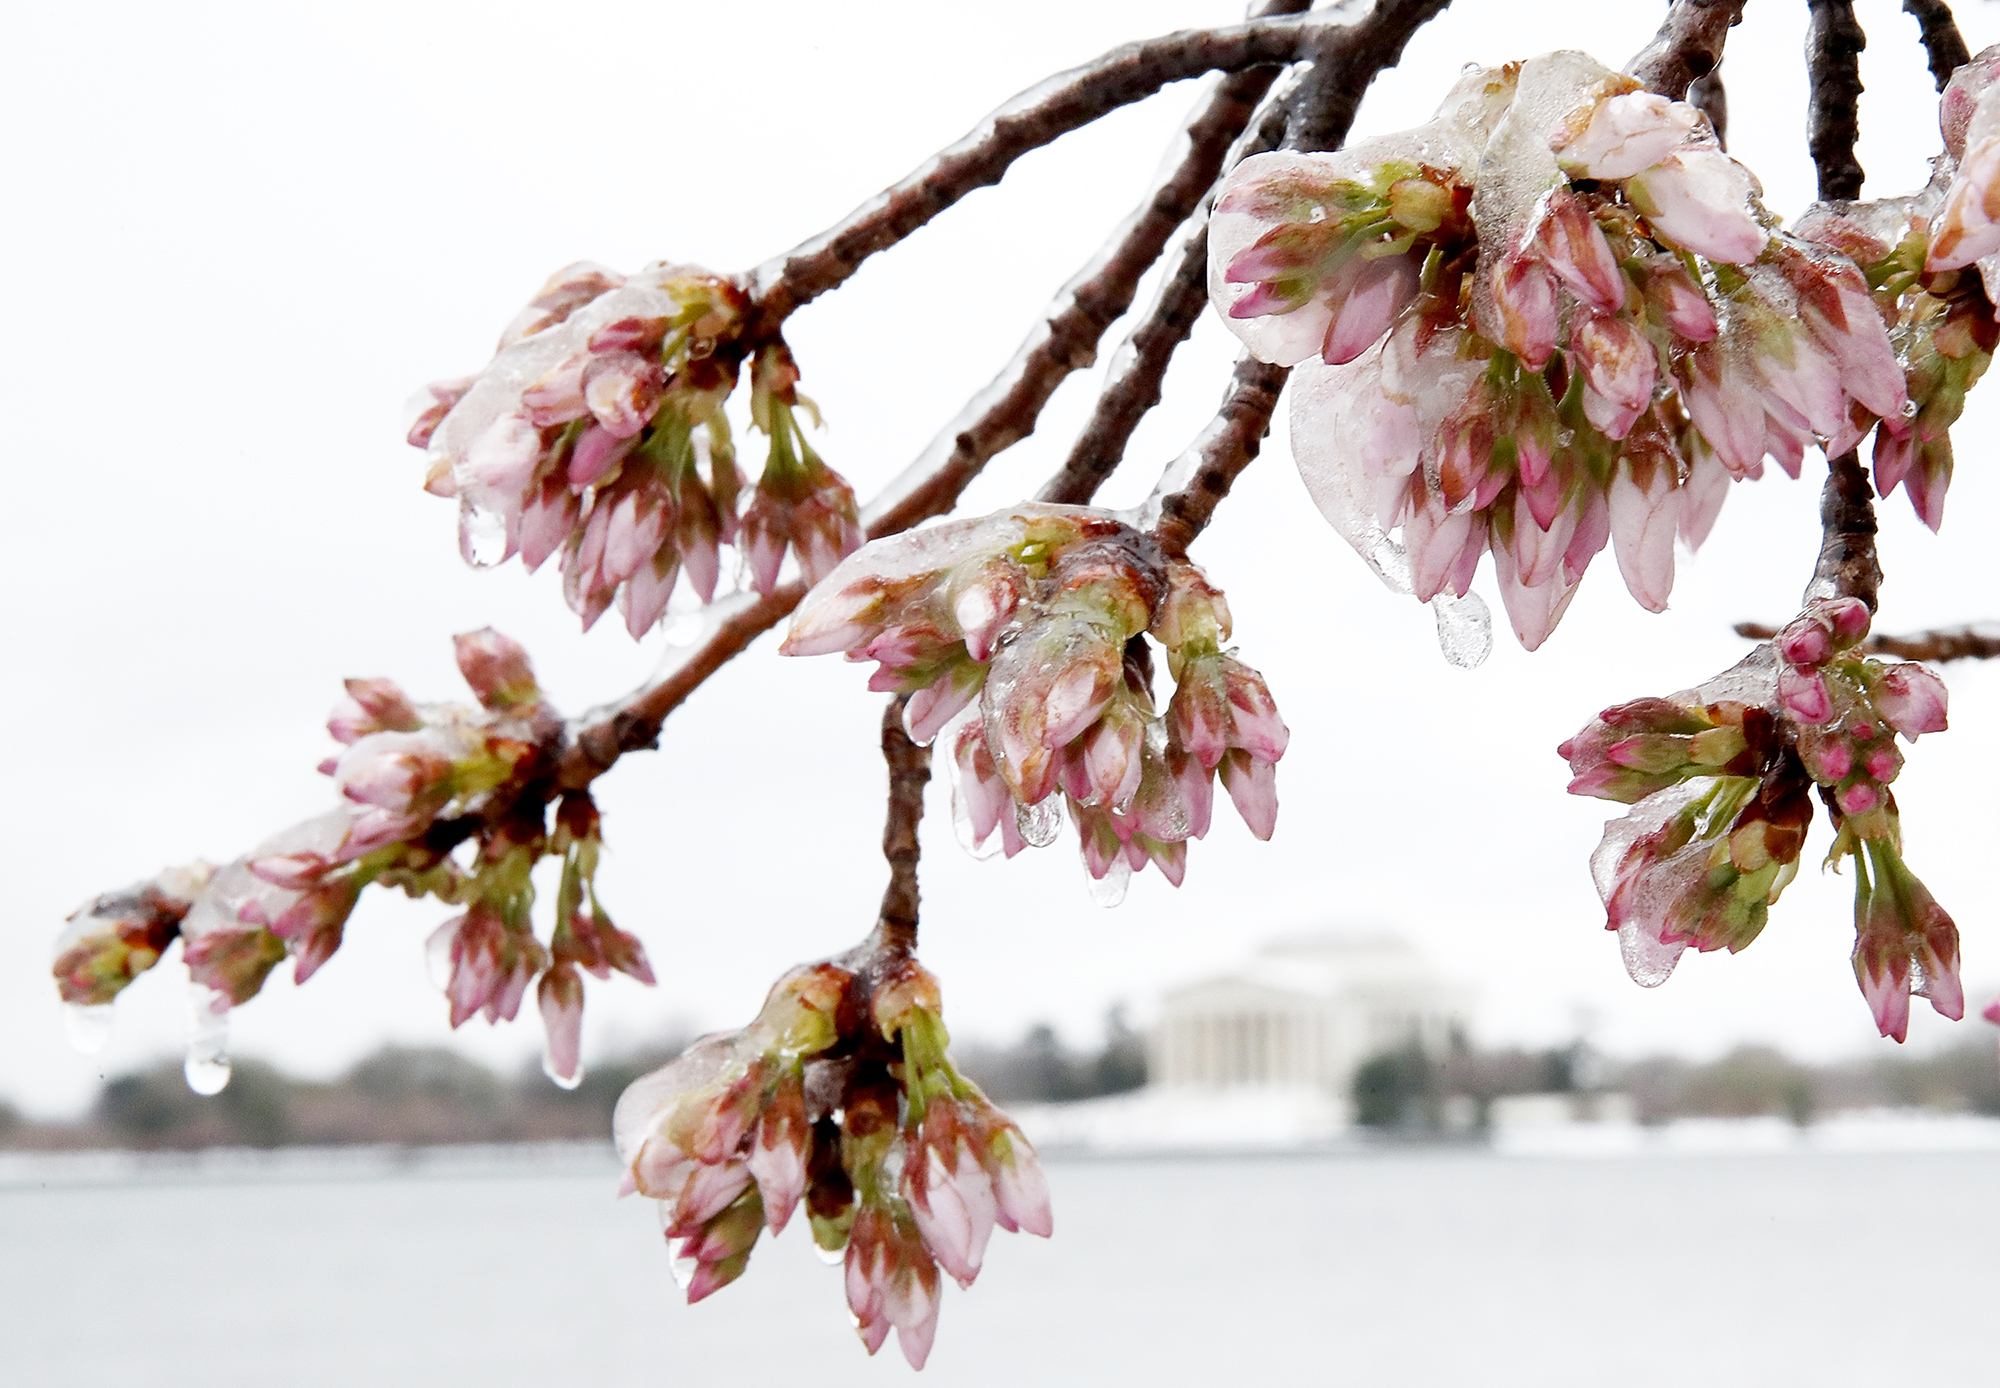 Ice covers cherry blossoms near the Jefferson Memorial in Washington, D.C., on March 14, 2017.